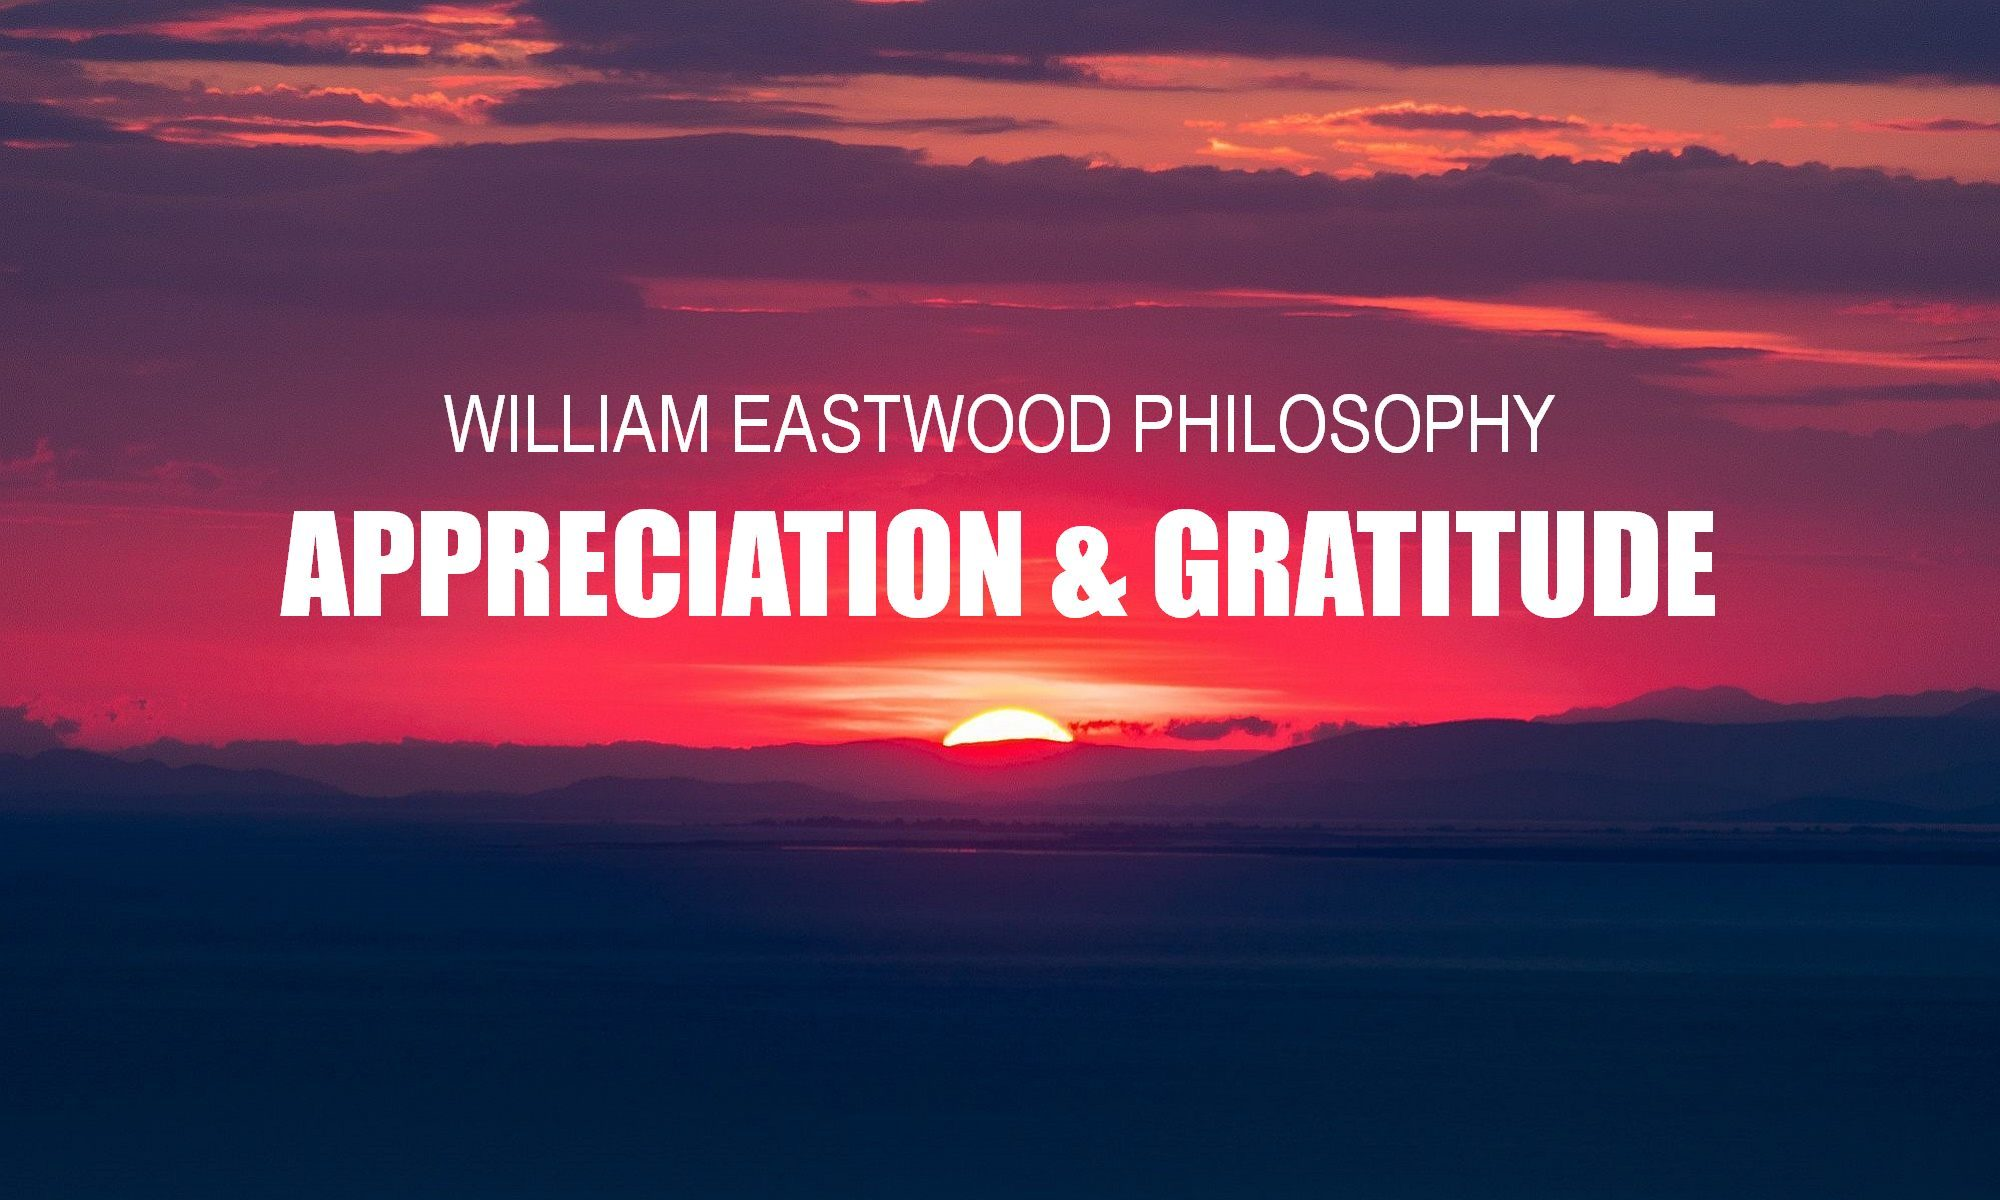 How to use positive emotions affect create events. Thoughts of appreciation and gratitude manifest positive events.